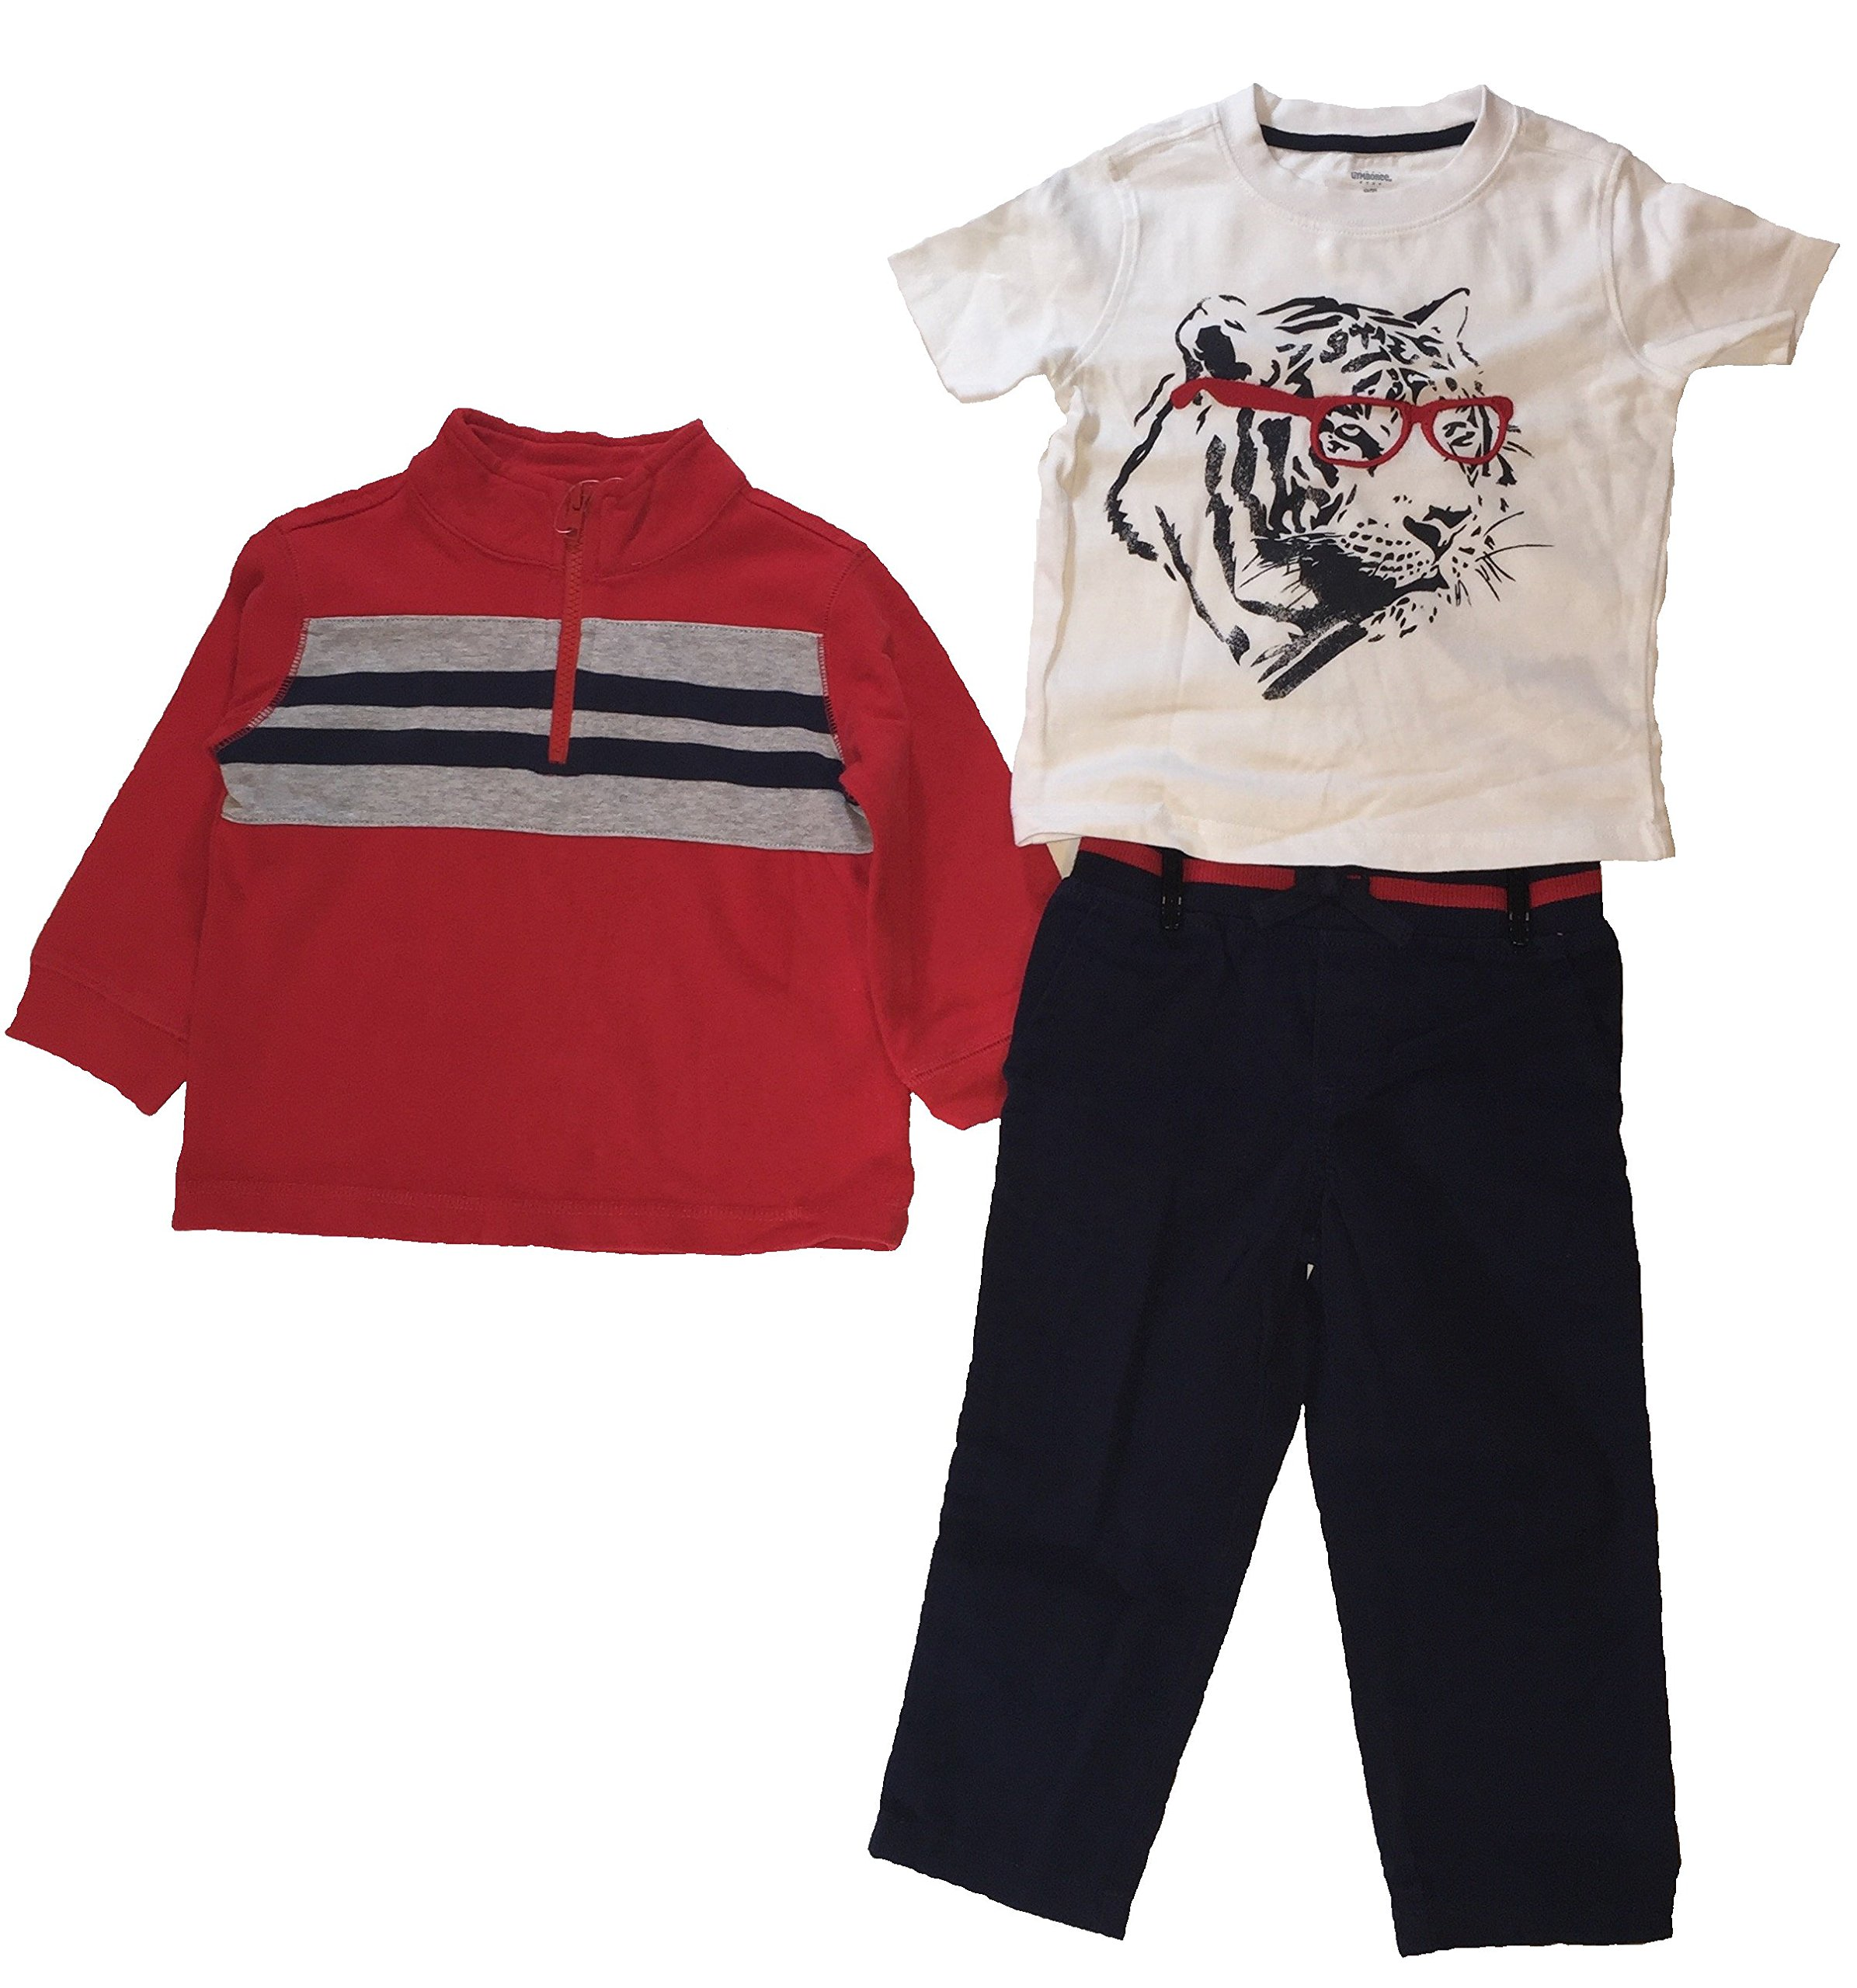 Gymboree Red and White 3 piece set for boys (4T)